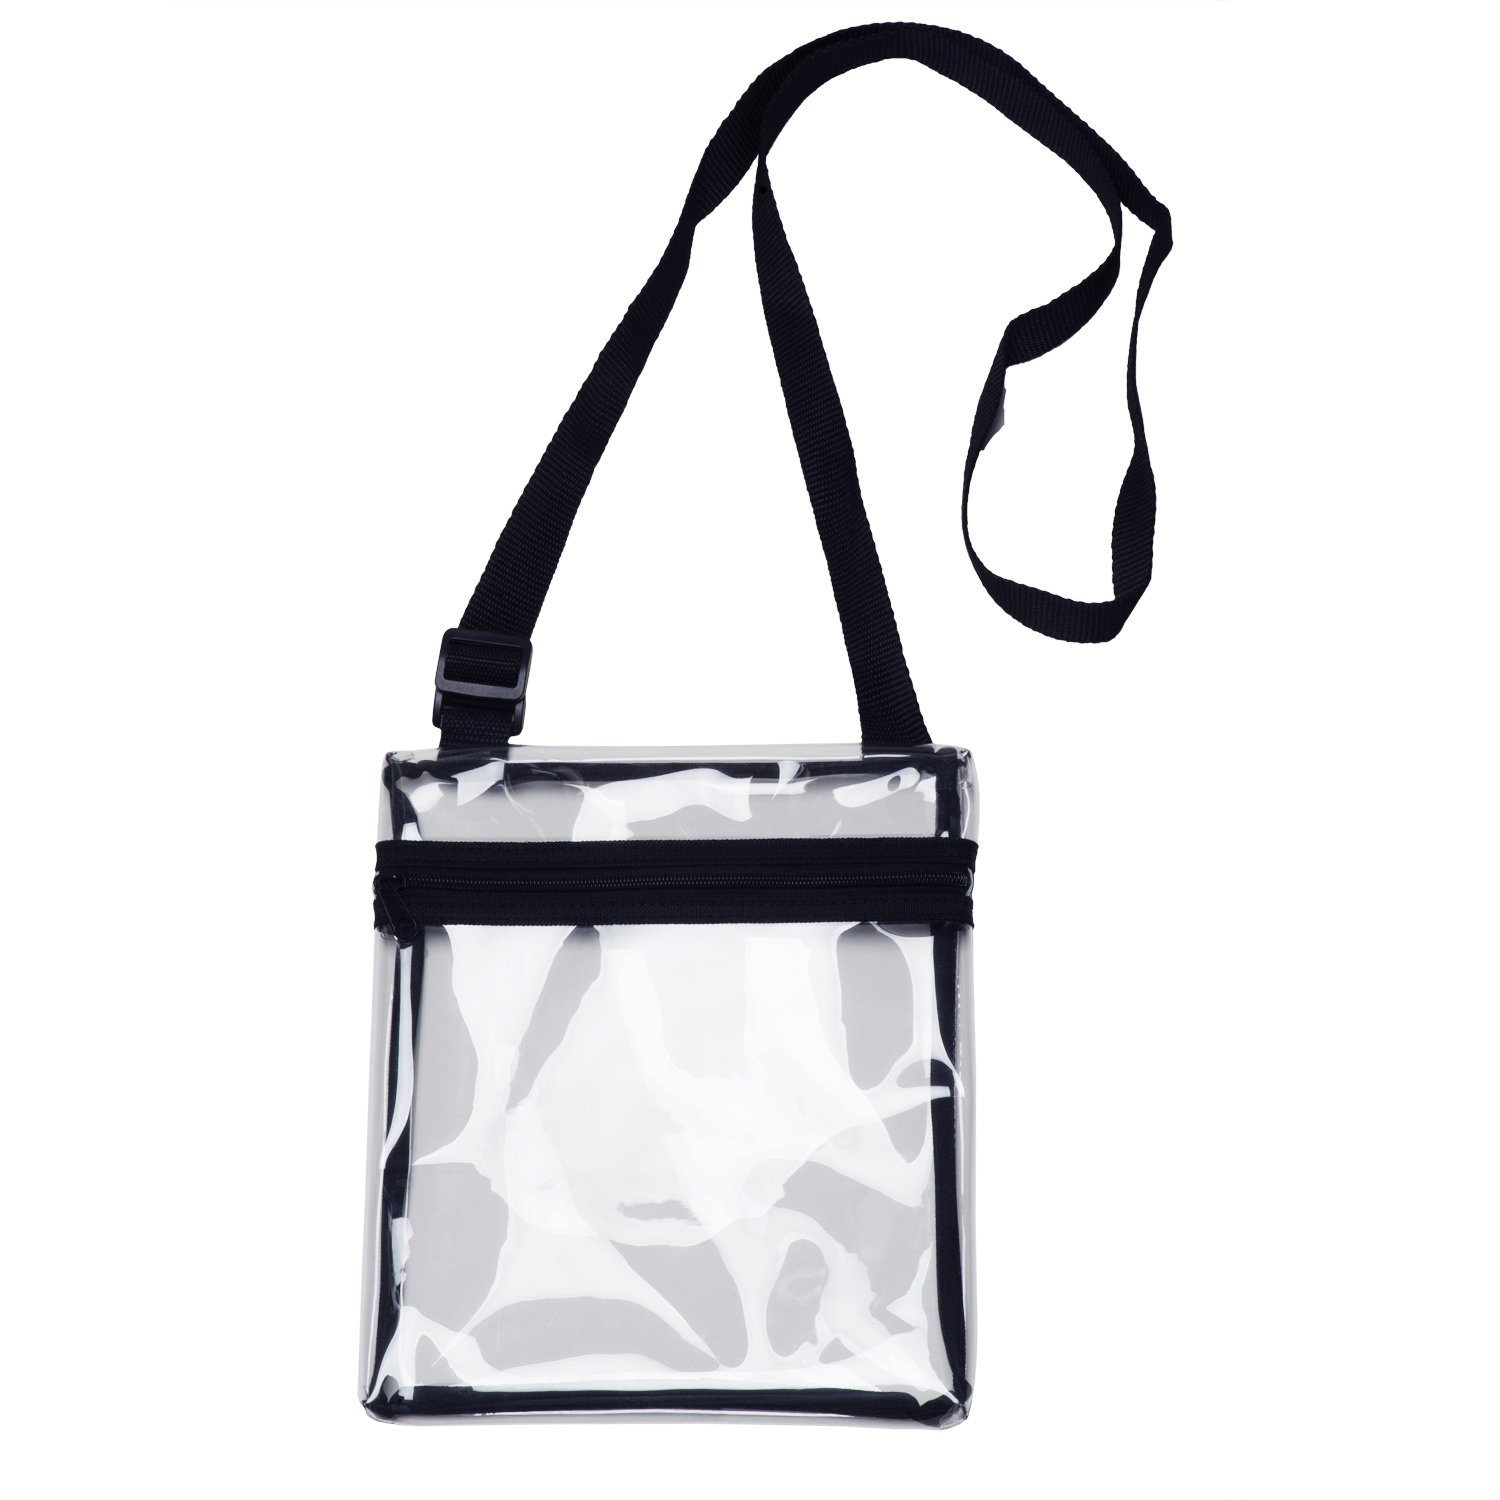 grinderPUNCH Small Clear Cross-Body Messenger Shoulder Bag Long Strap - NFL Stadium Approved Clear Purse